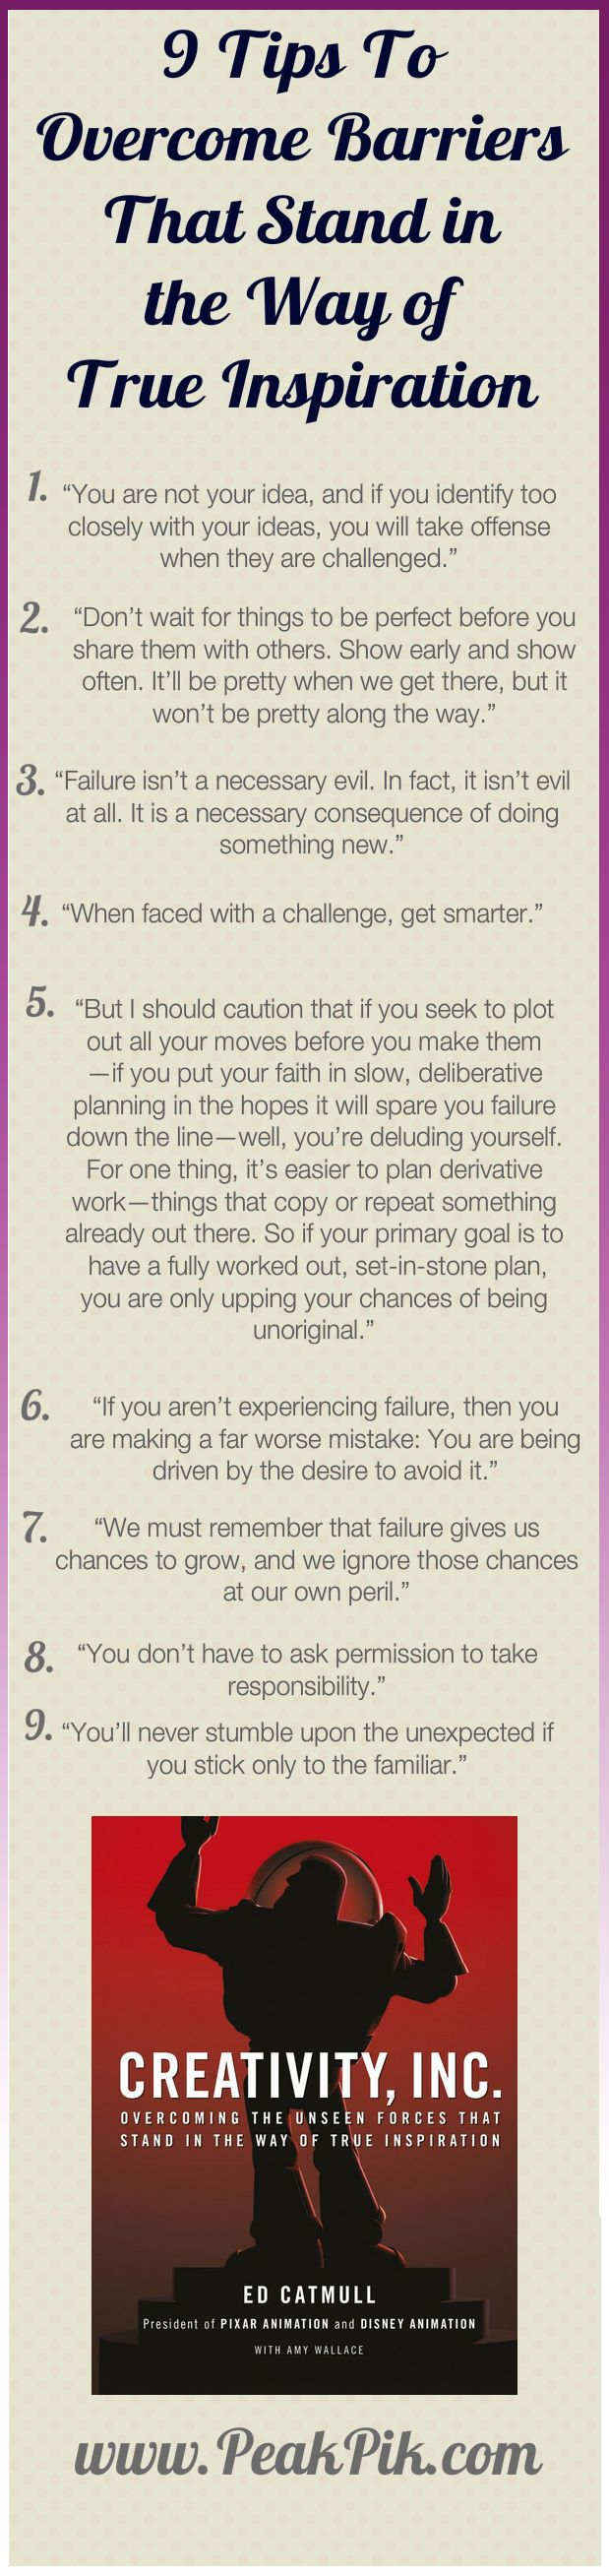 Daily Tips And Motivation | Creativity, Inc.: Overcoming the Unseen Forces That Stand in the Way of True Inspiration Hardcover by Ed Catmull